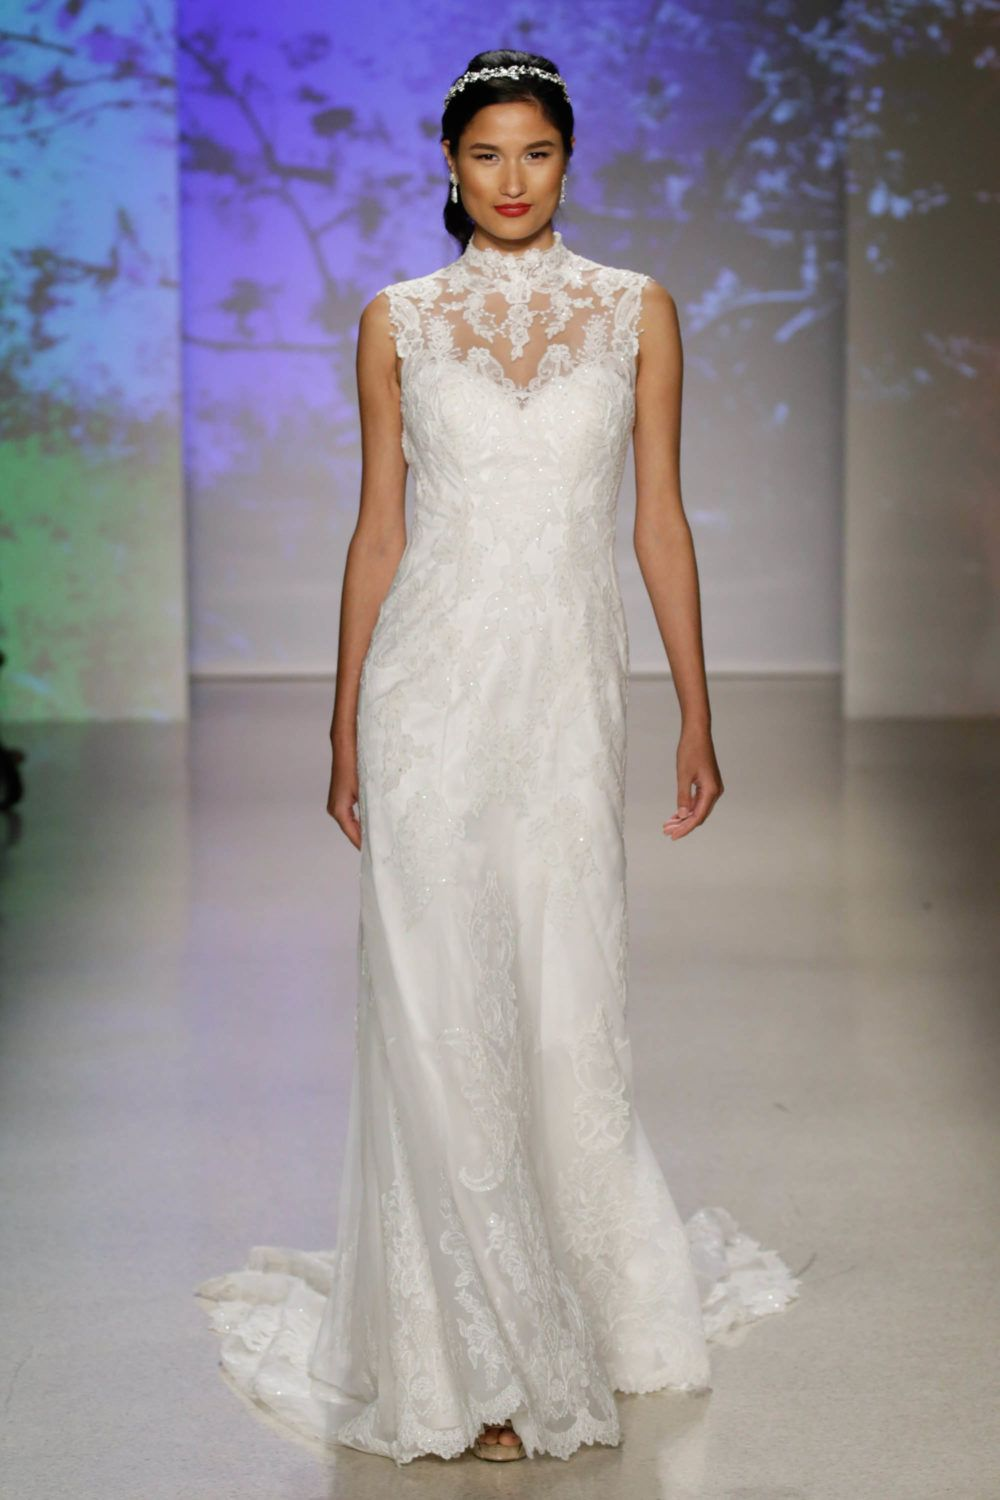 Mulan See All The New 2017 Disney Fairy Tale Wedding Dresses By Alfred Angelo